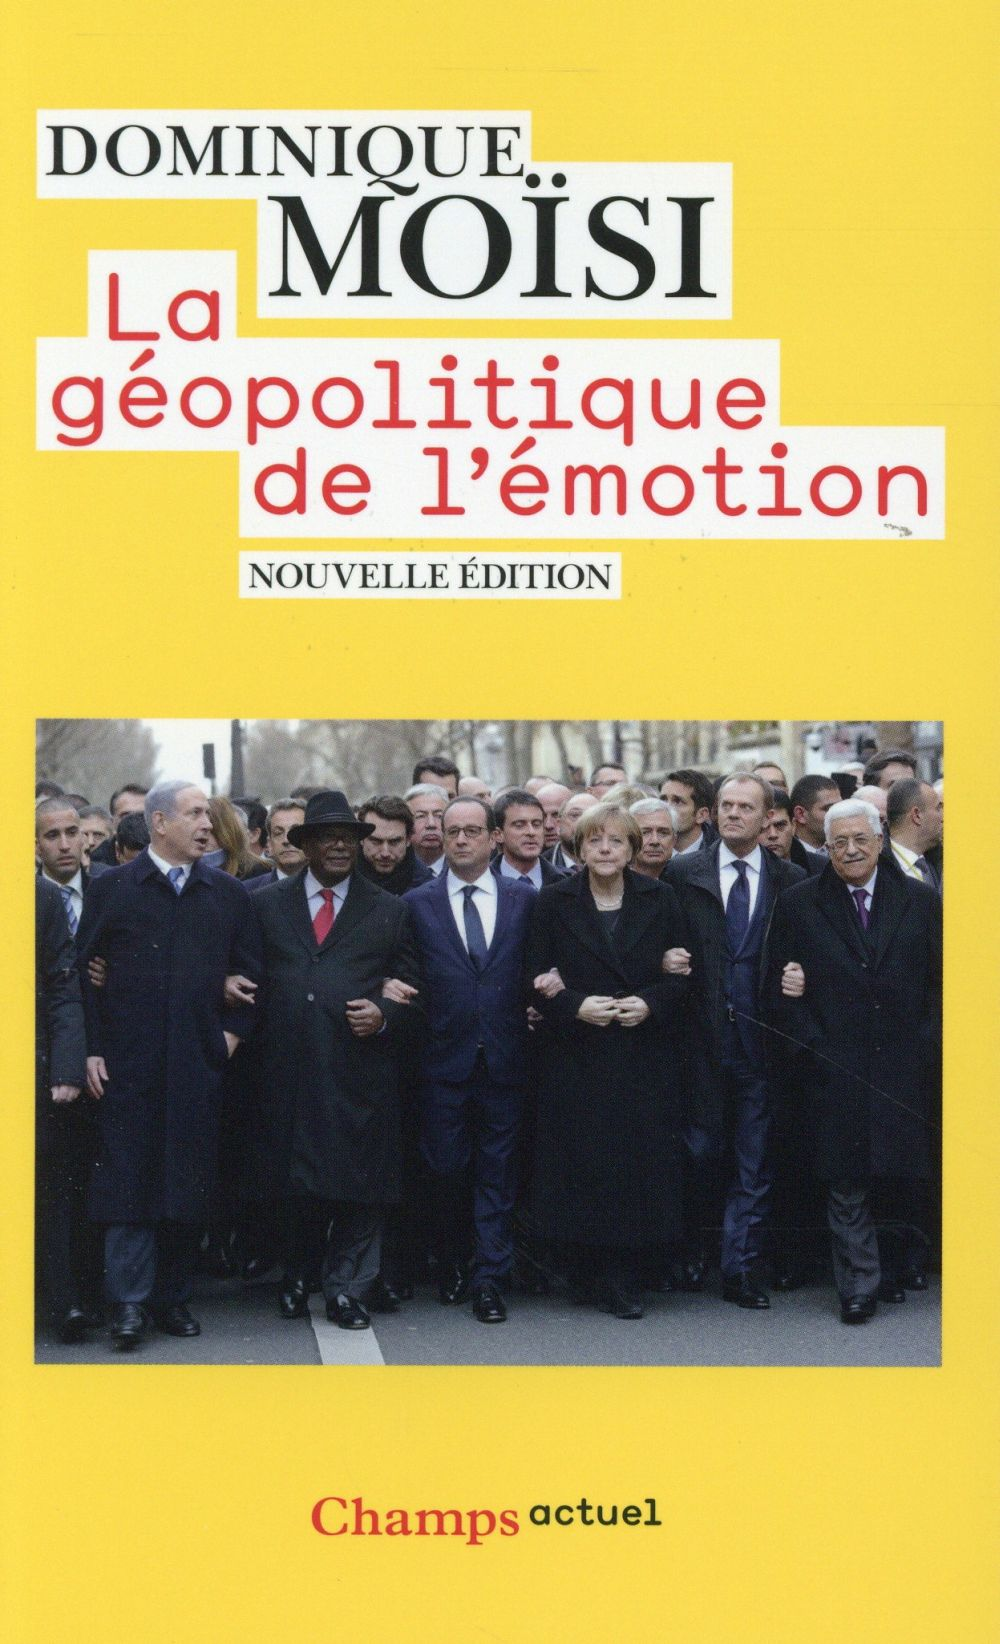 LA GEOPOLITIQUE DE L'EMOTION